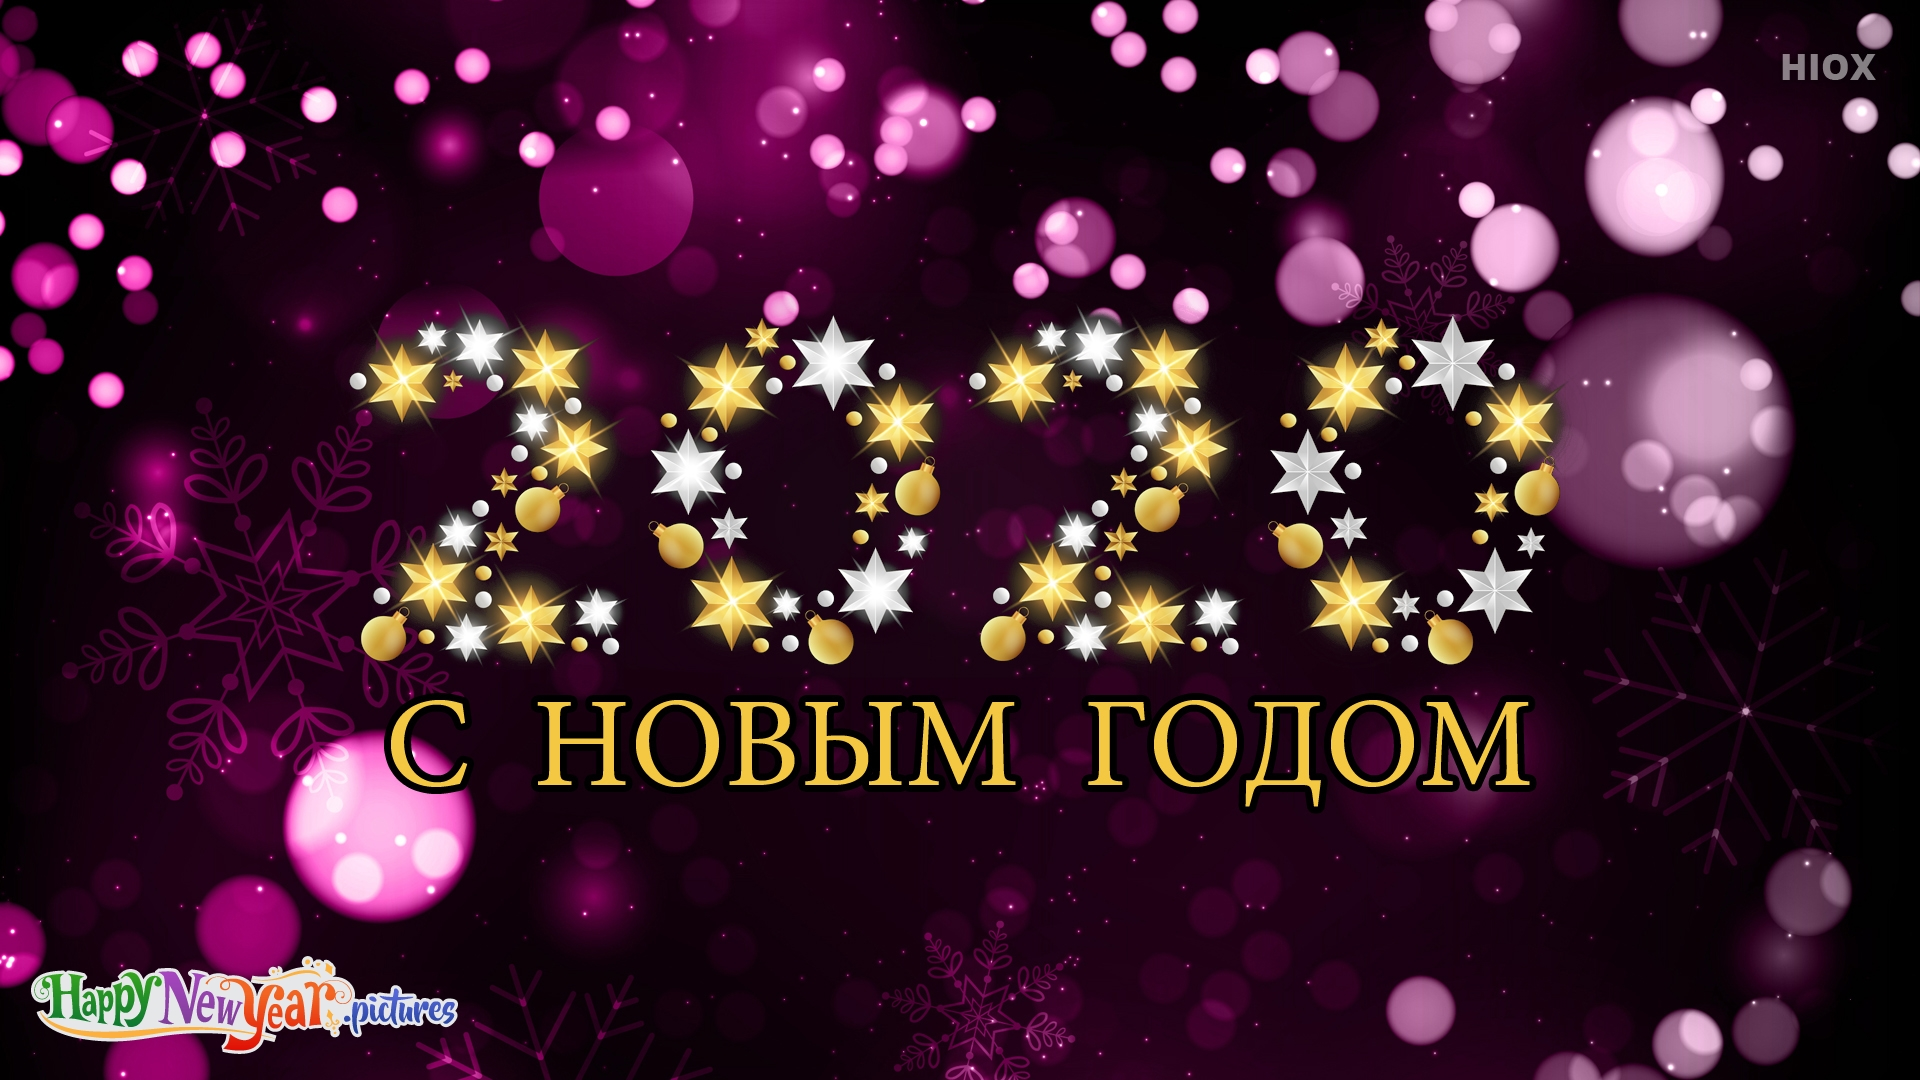 Joyous Happy New Year 2020 Wishes In Russian